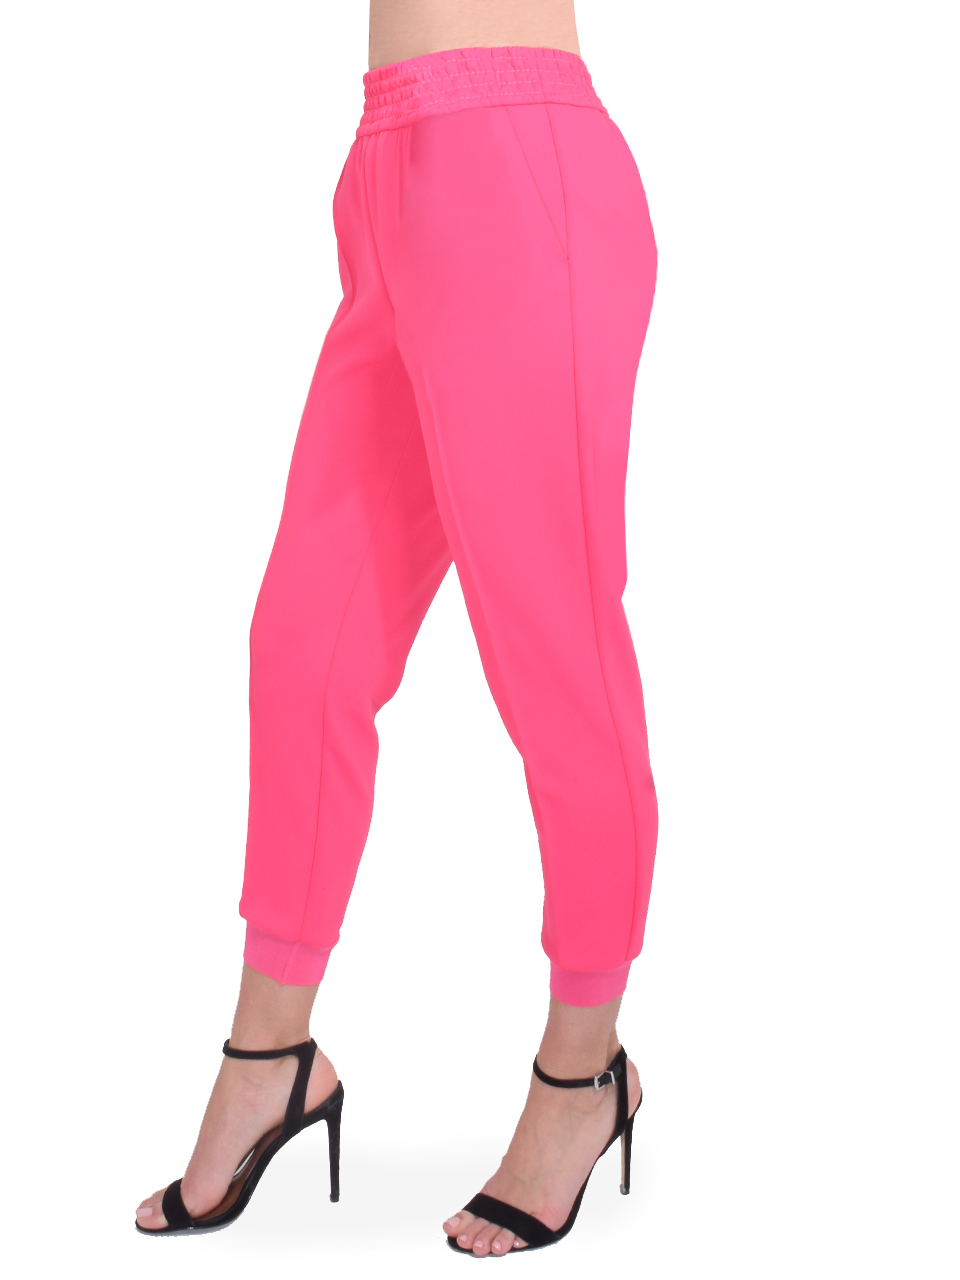 ALICE + OLIVIA Ramora Skinny Jogger in Wild Pink Side View